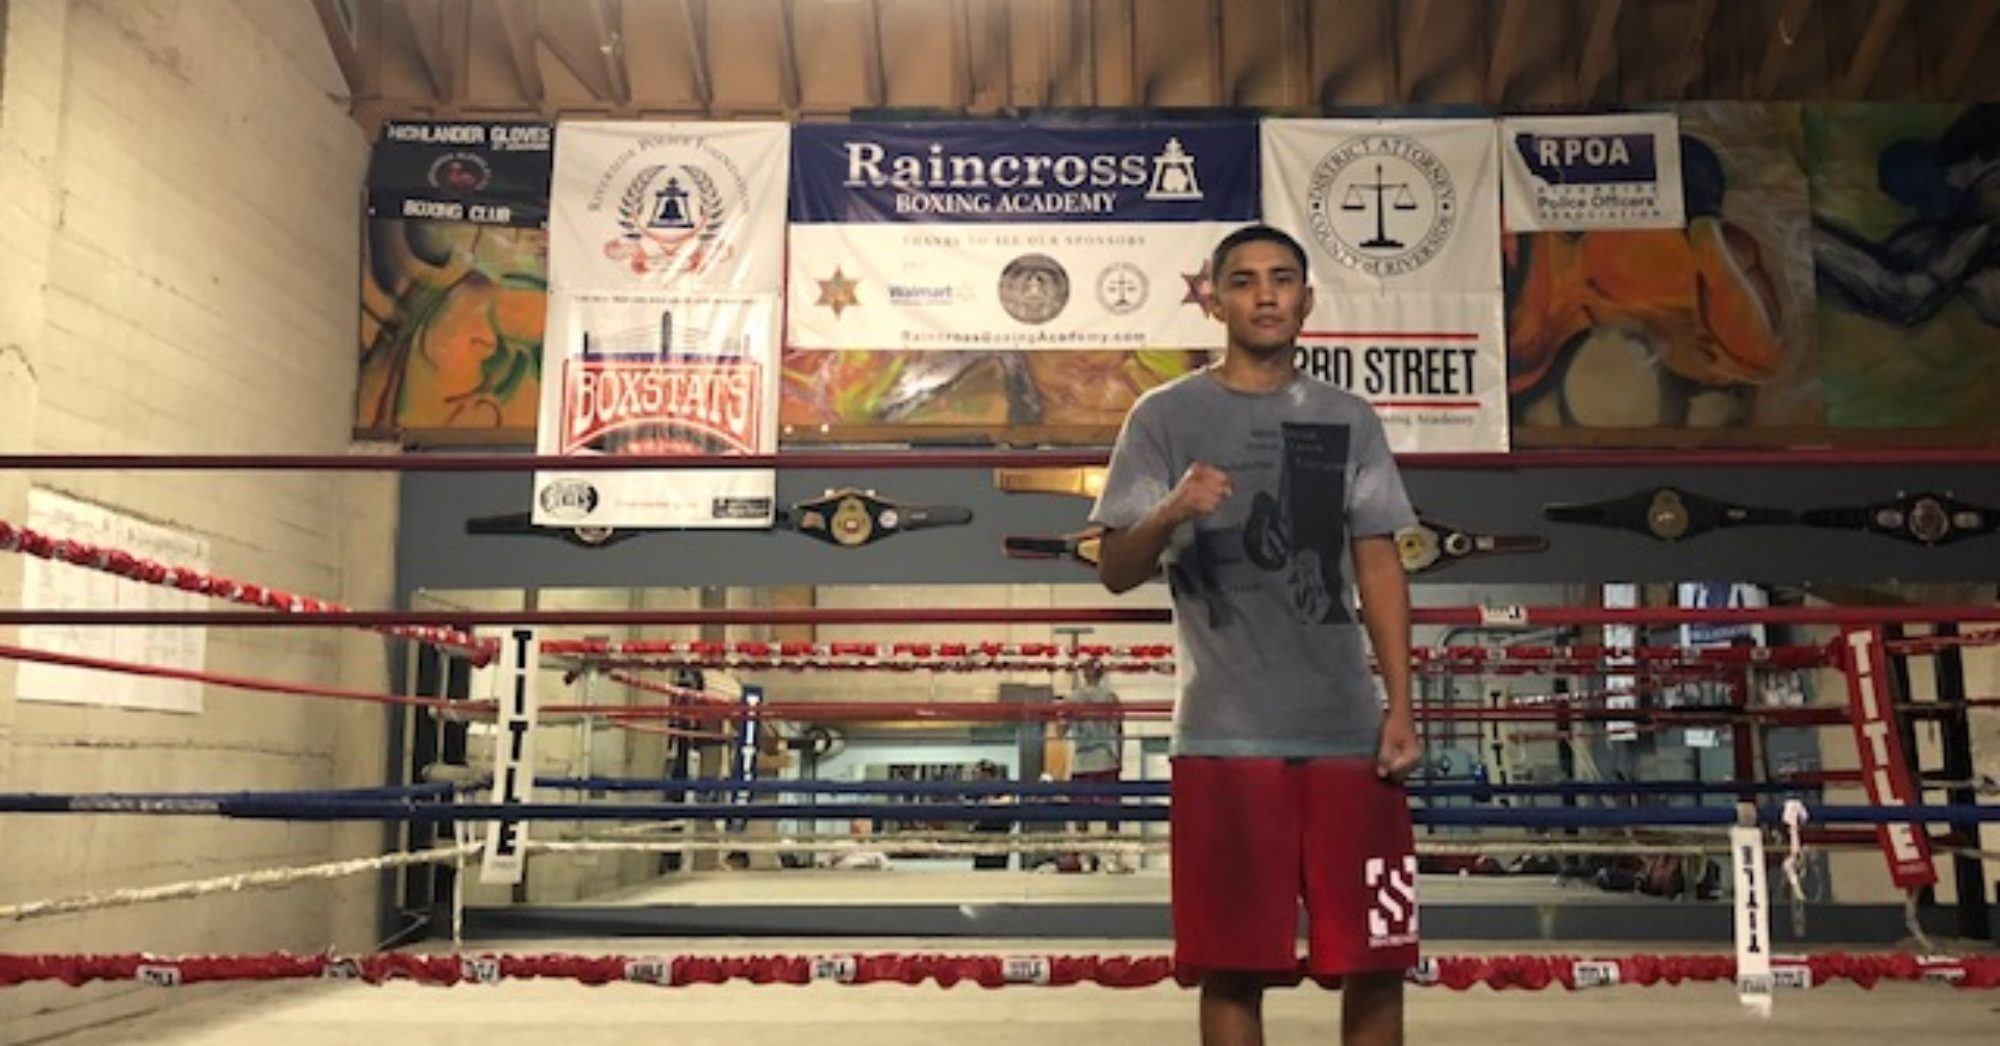 Raincross Boxing Academy